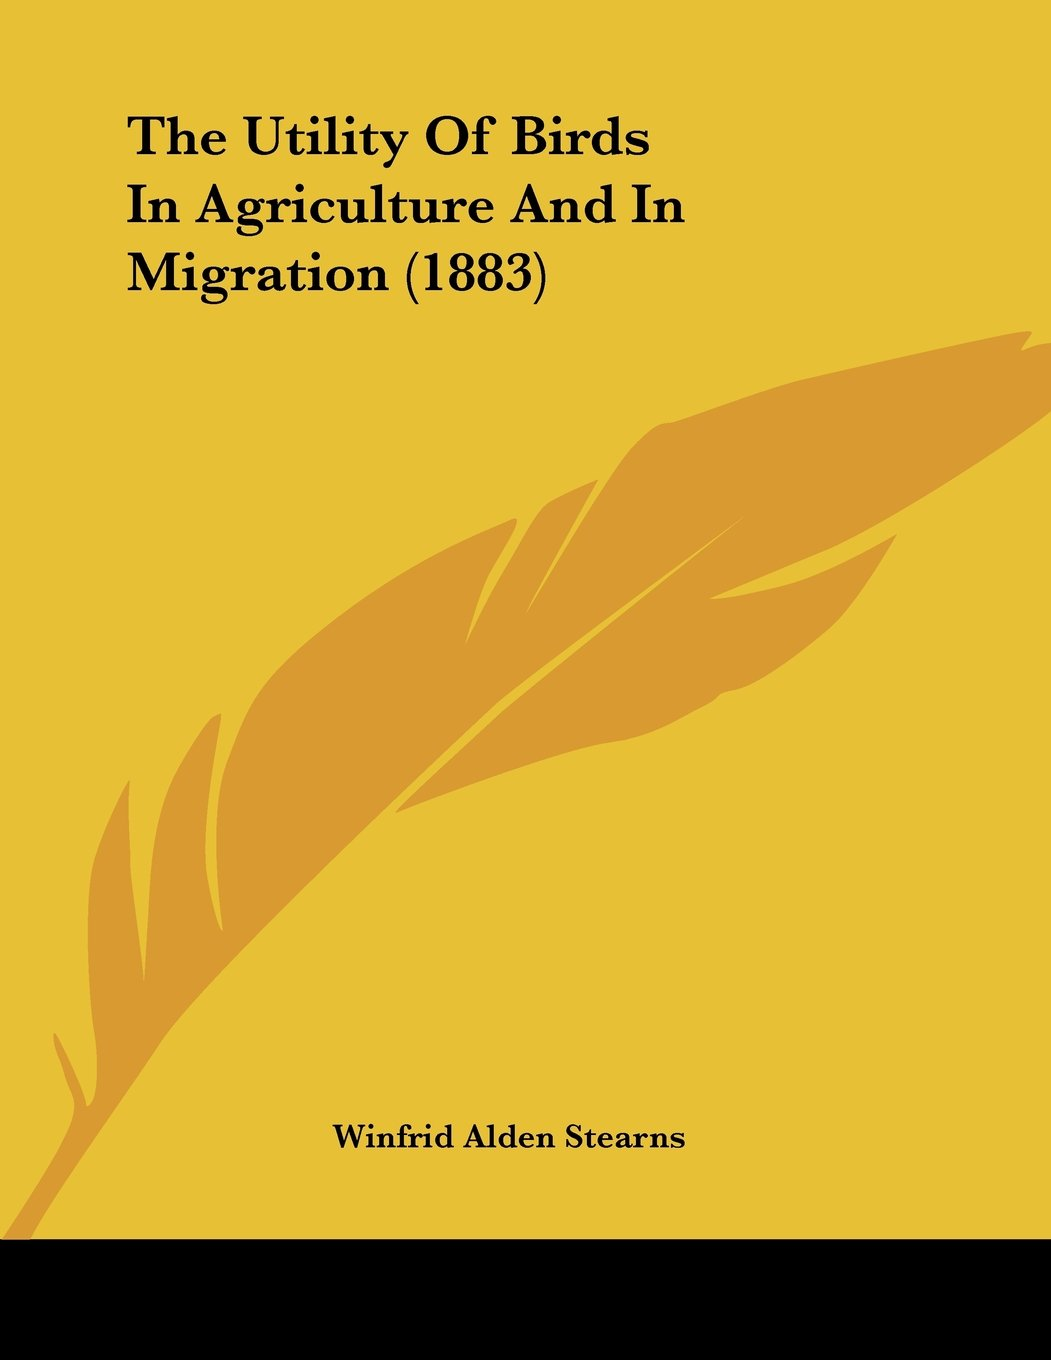 The Utility Of Birds In Agriculture And In Migration (1883) pdf